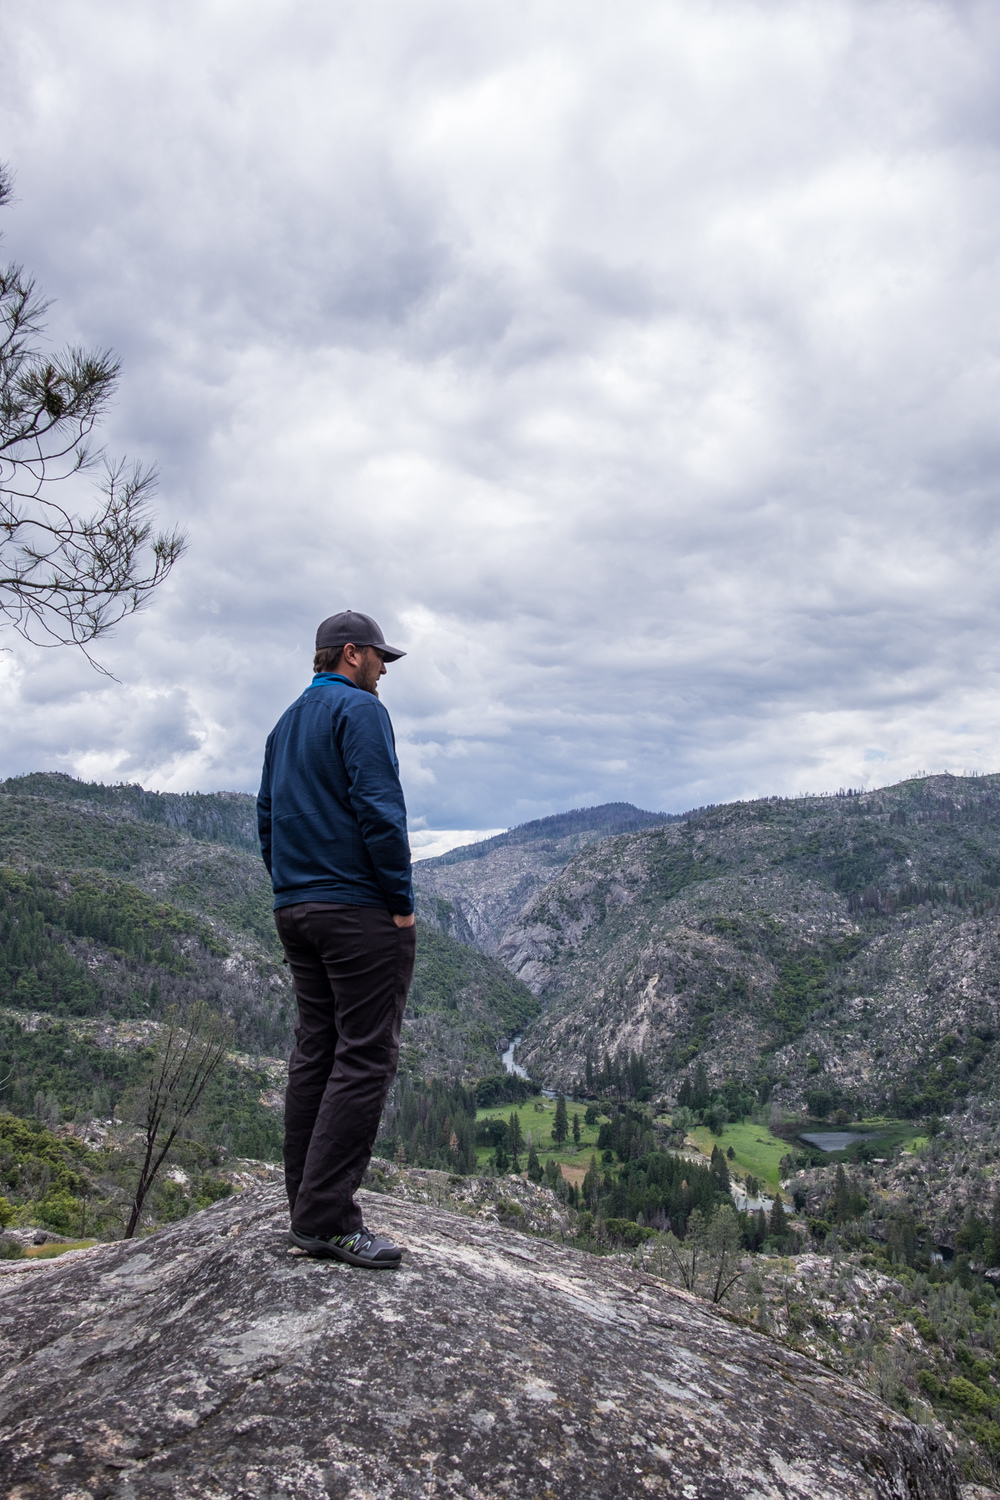 Stef caught me pondering the many questions of the Hetch Hetchy Valley.